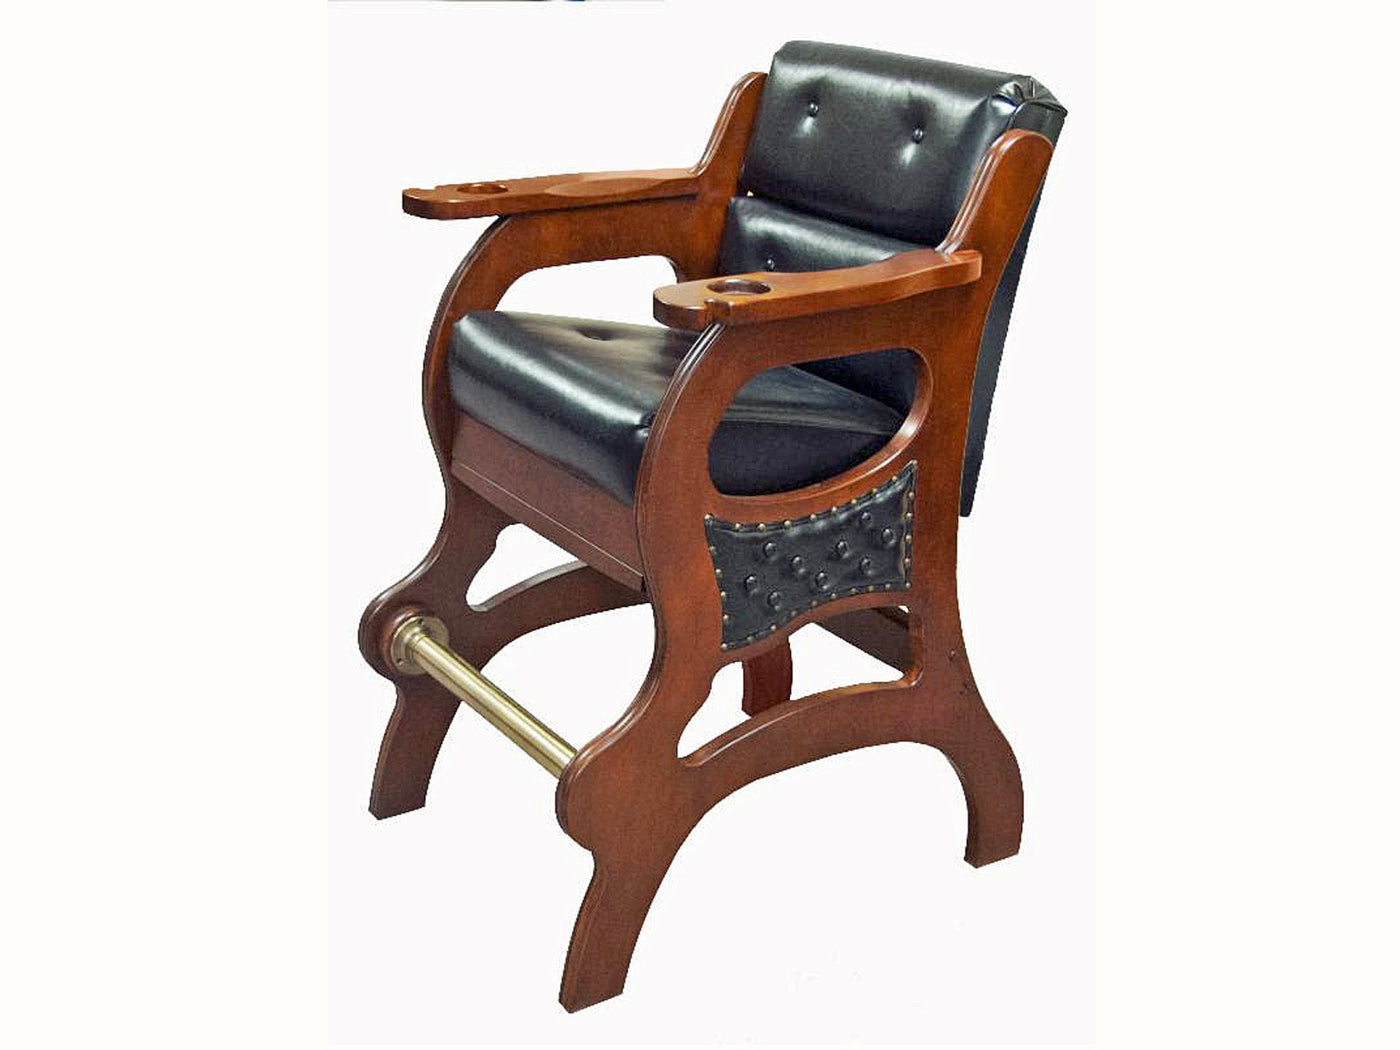 olhausen billiard spectator chair  sc 1 st  Robbies Billiards & Olhausen Billiards Spectator Chair u2013 Robbies Billiards